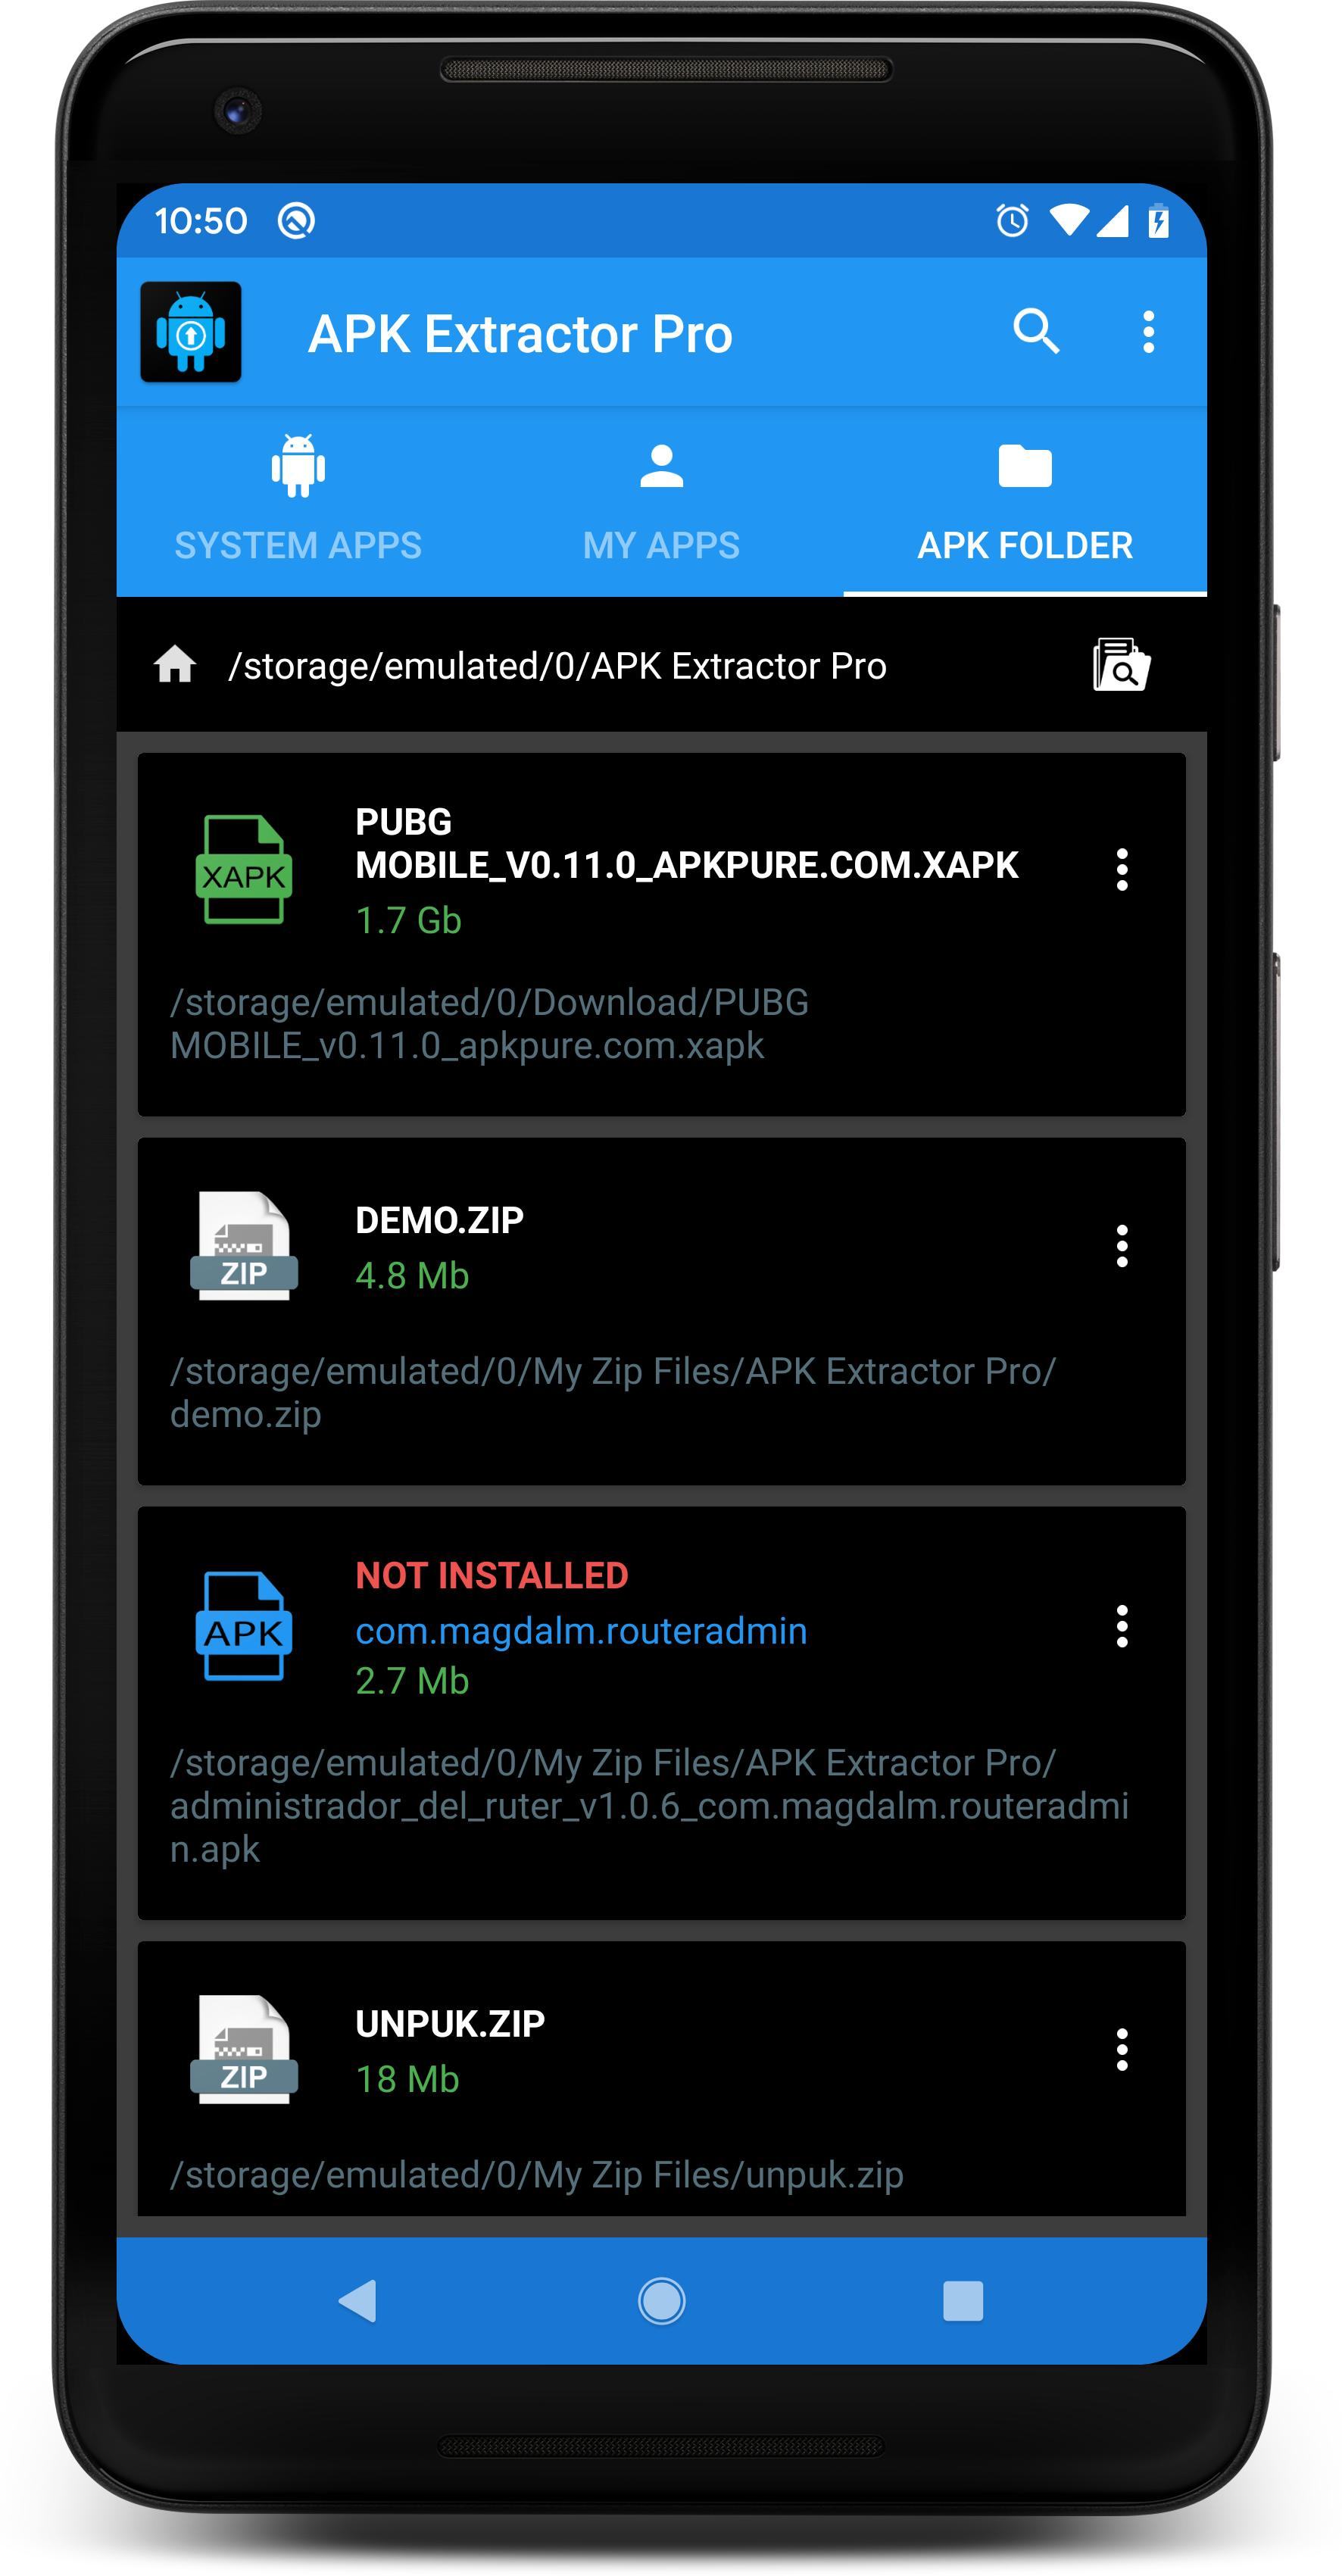 APK EXTRACTOR PRO for Android - APK Download